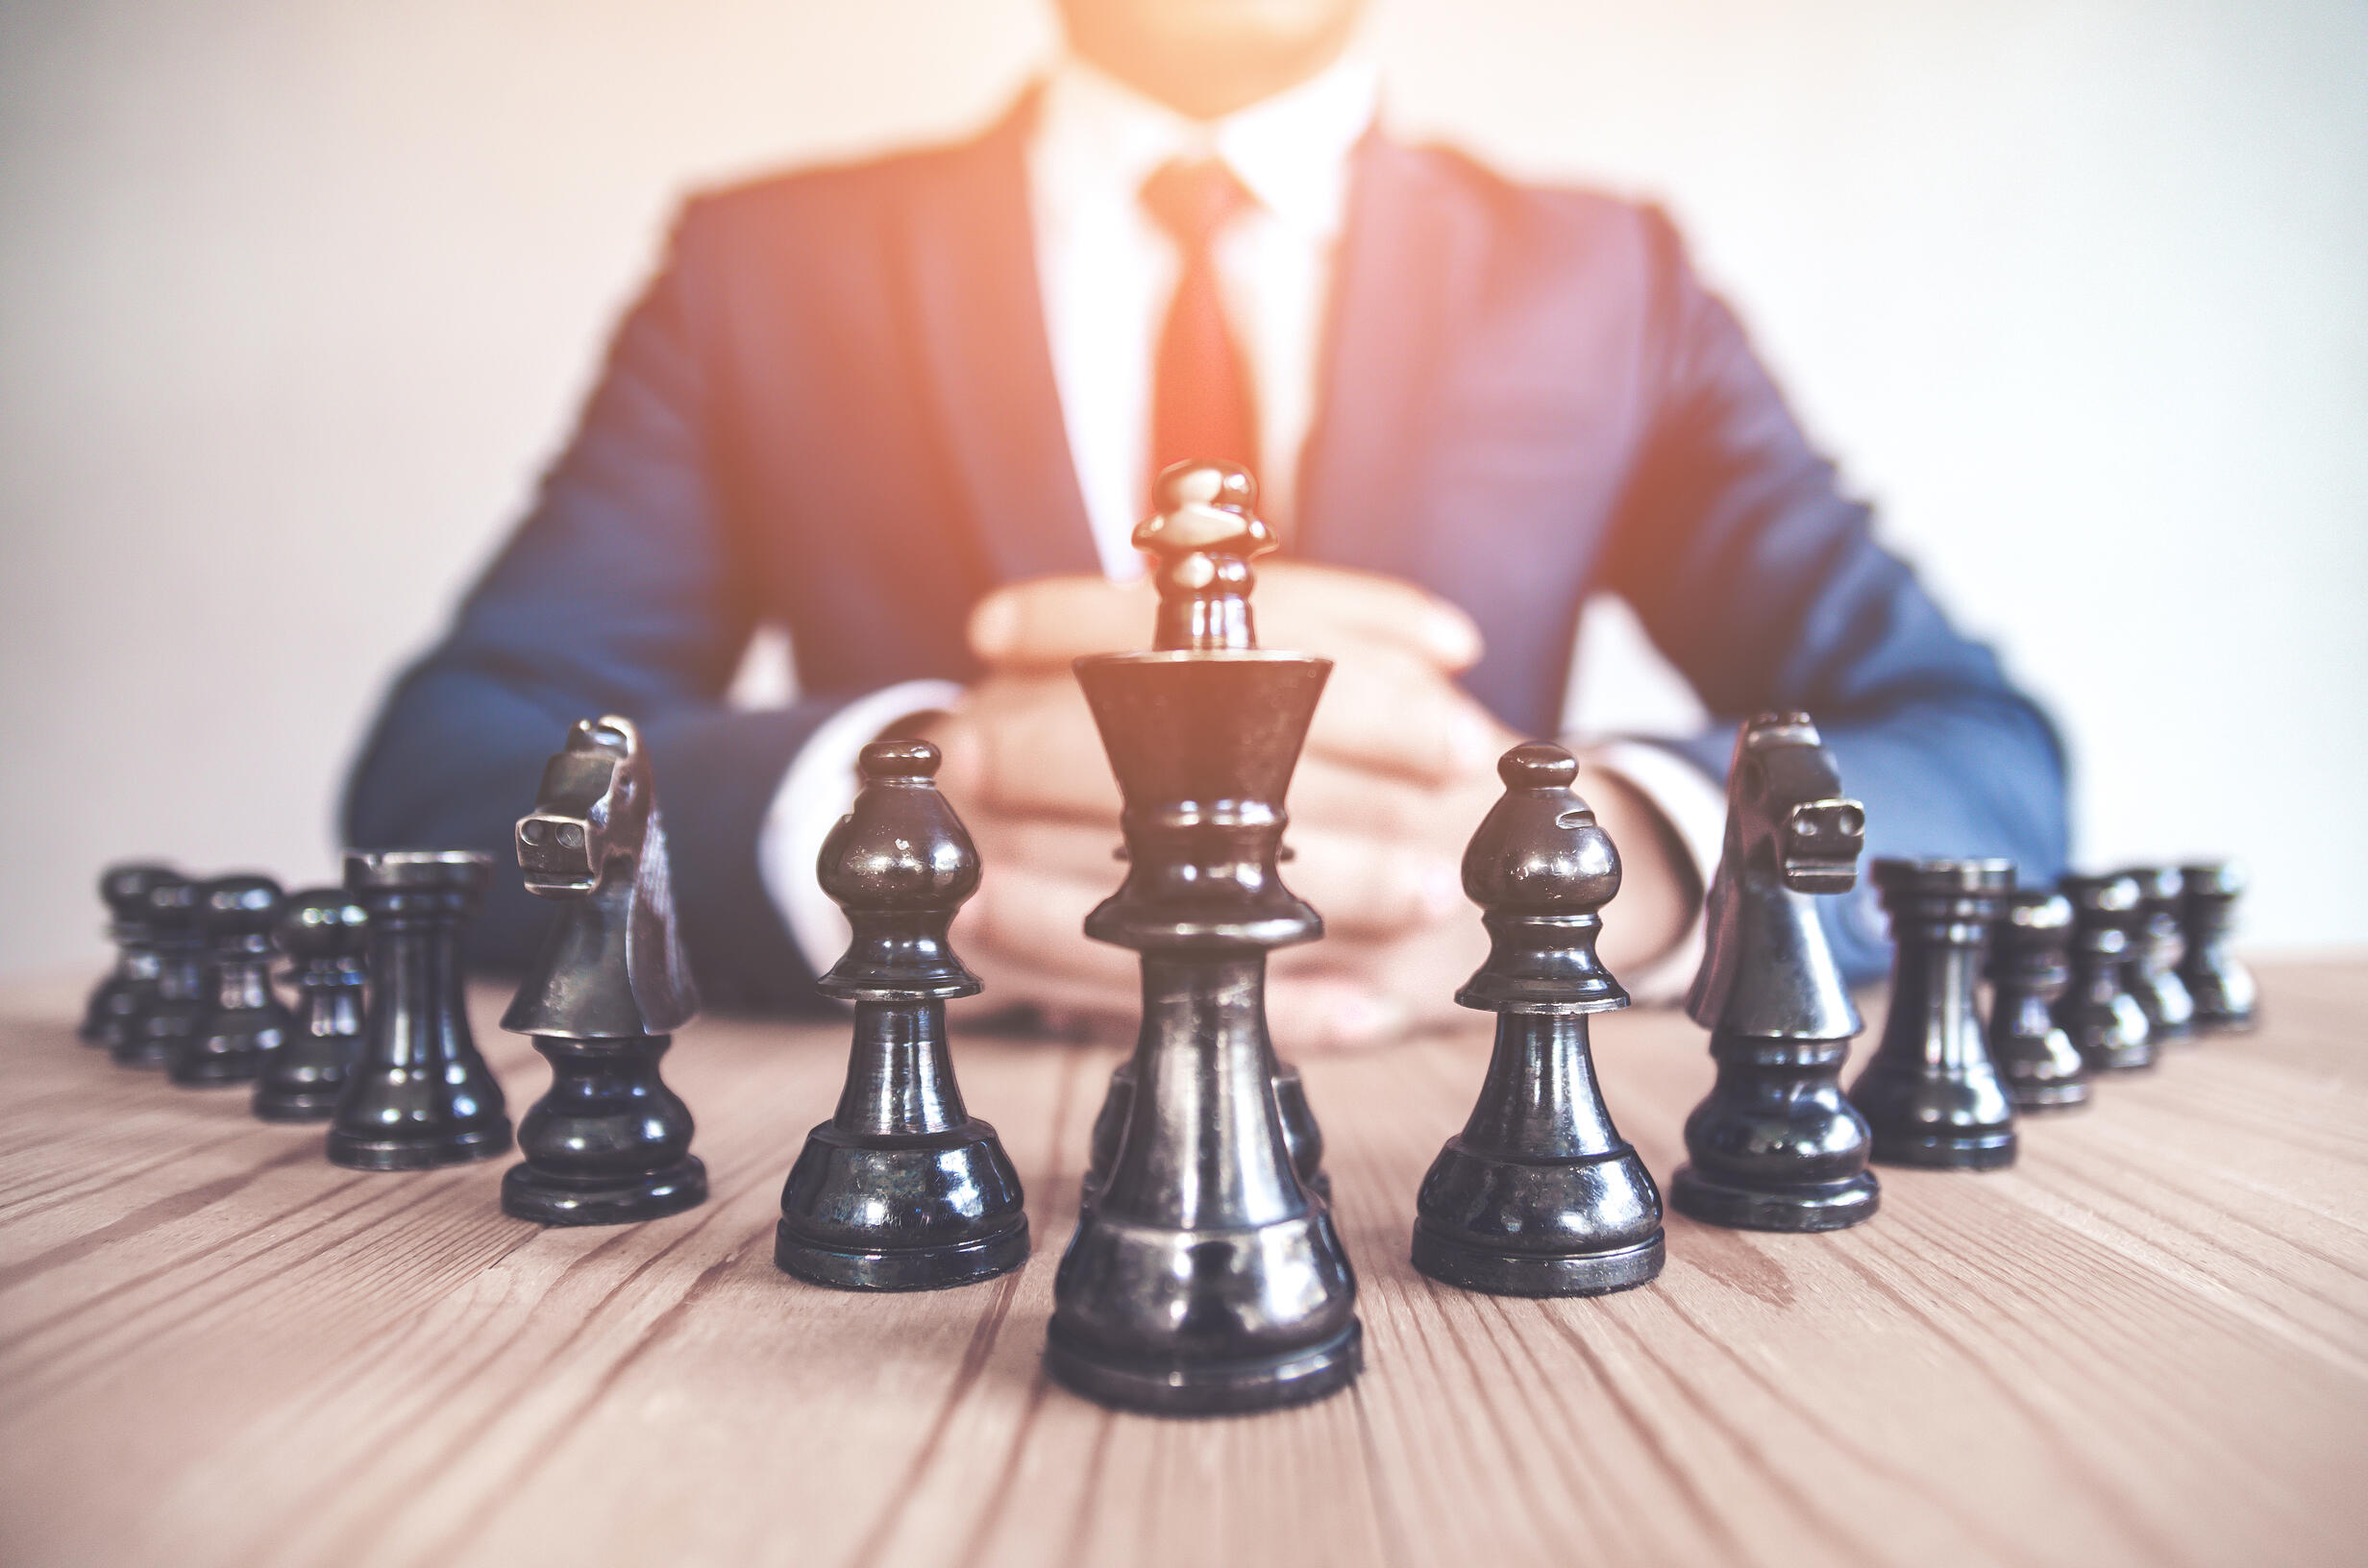 Working capital: is an aggressive or conservative strategy right for your business?